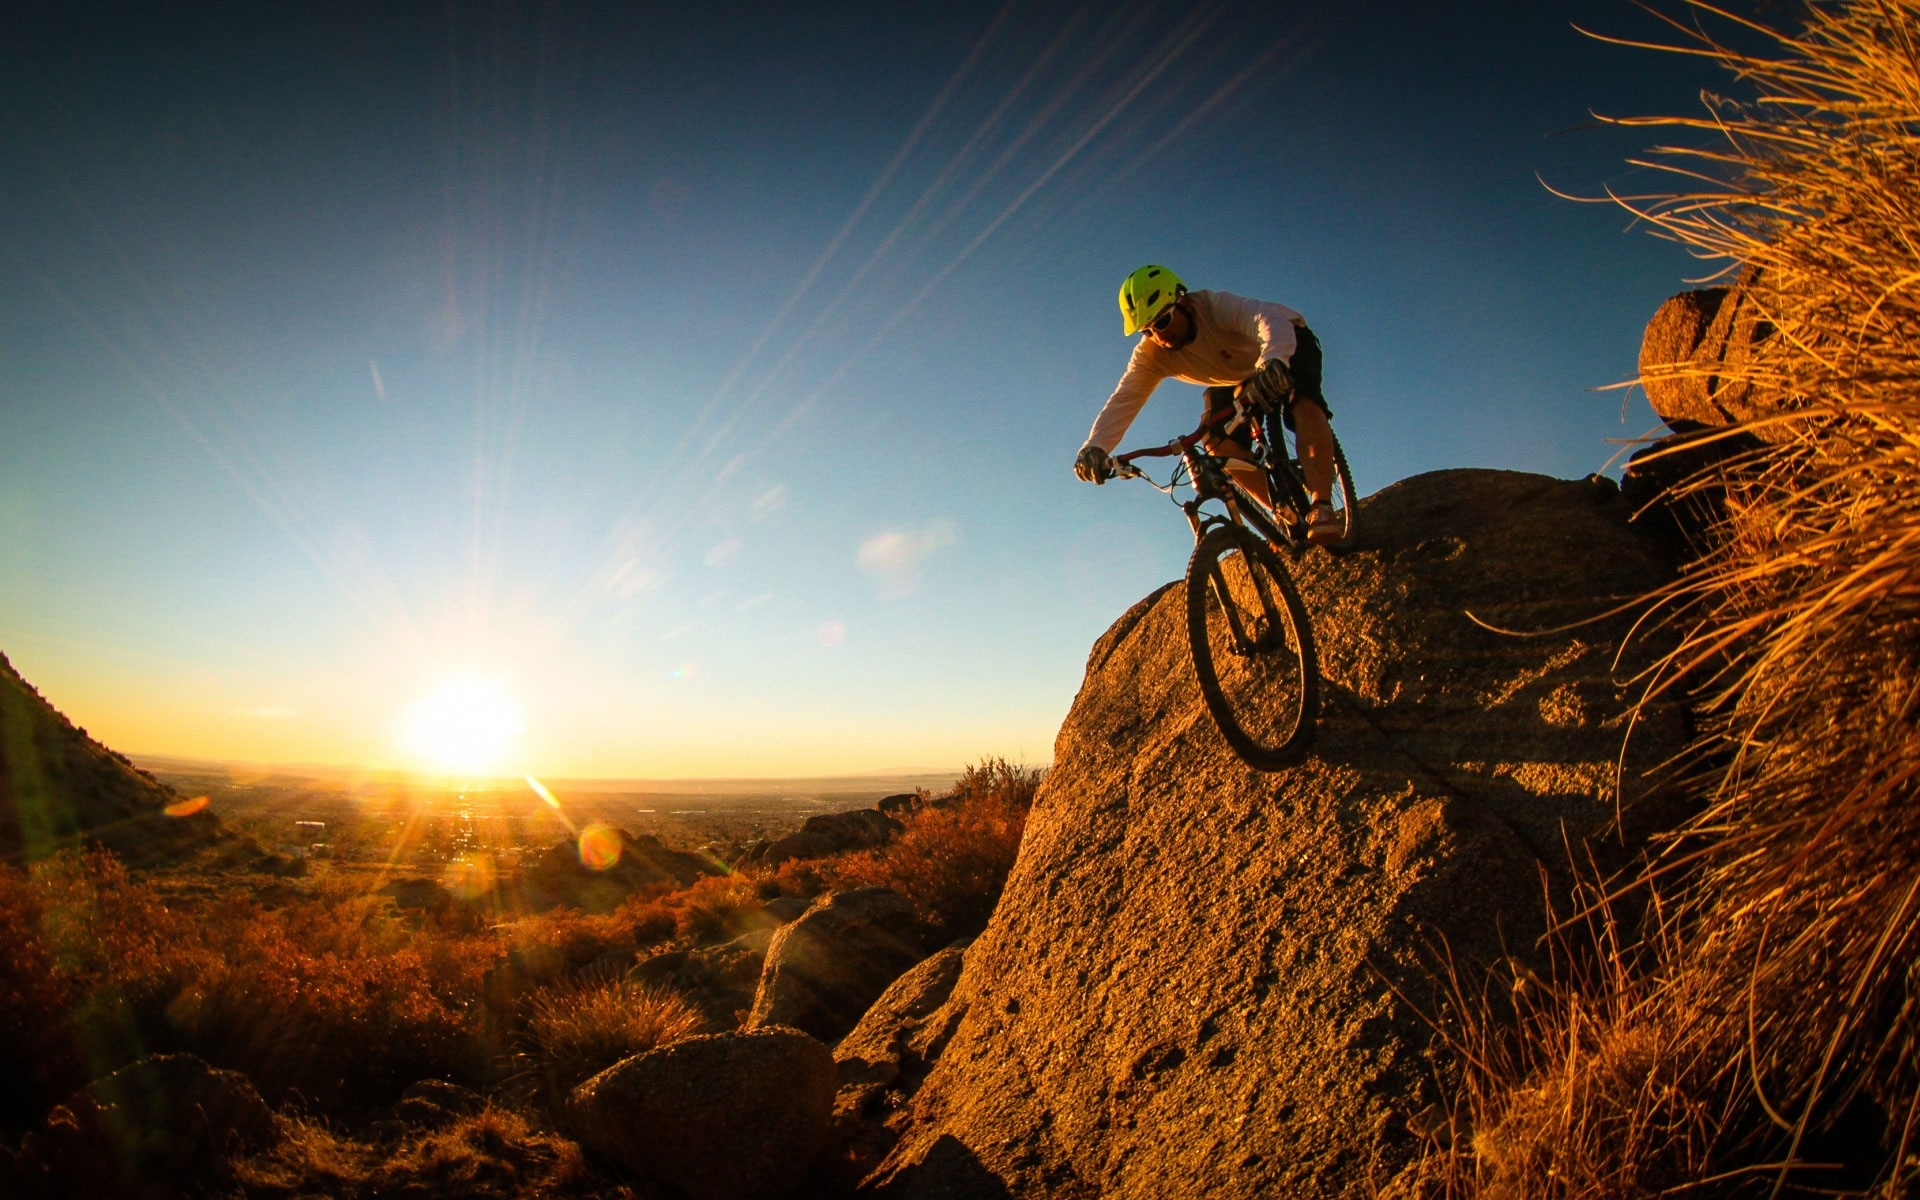 mountain biking hq desktop wallpaper 09290 - baltana